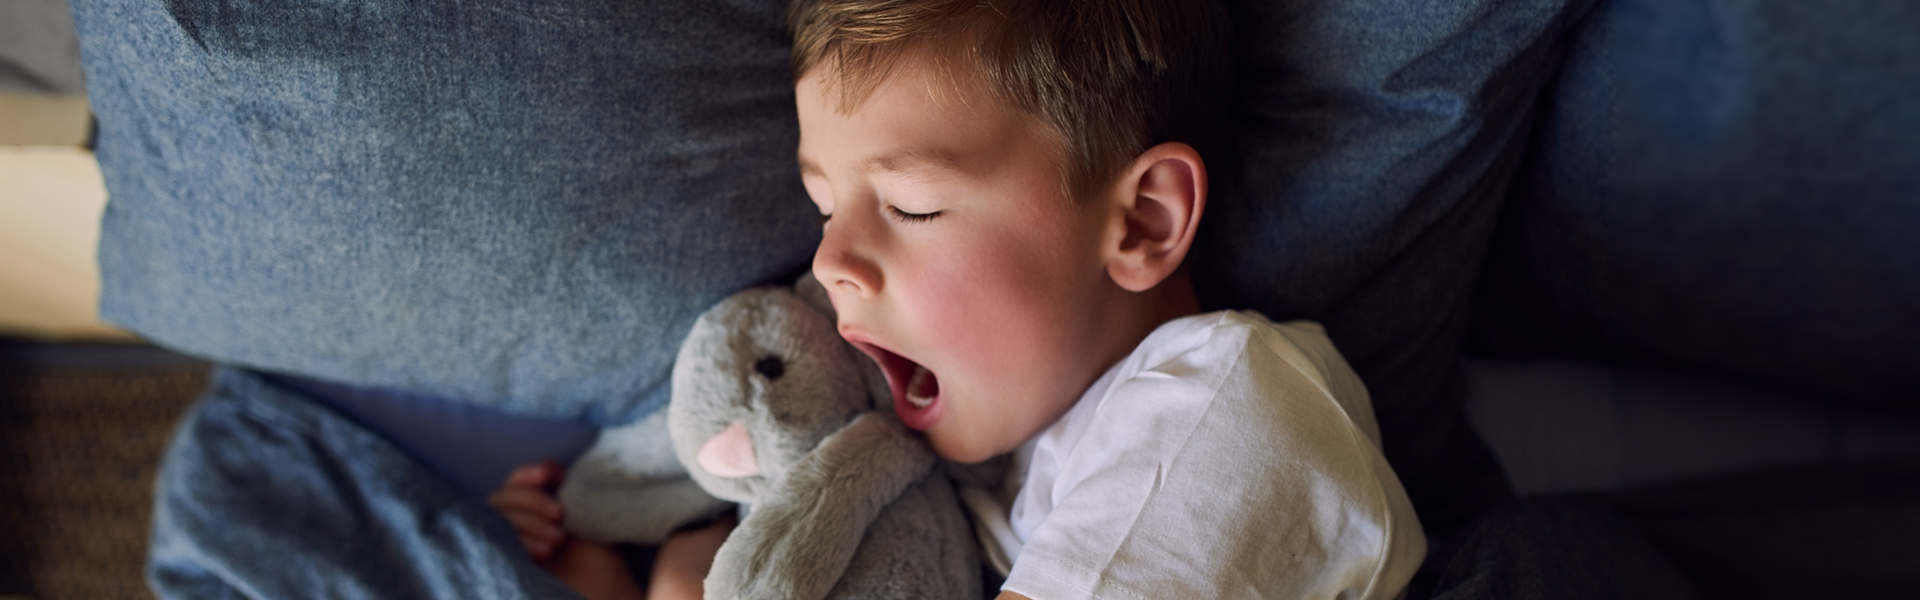 Sleep Problems and Tongue Ties in Children